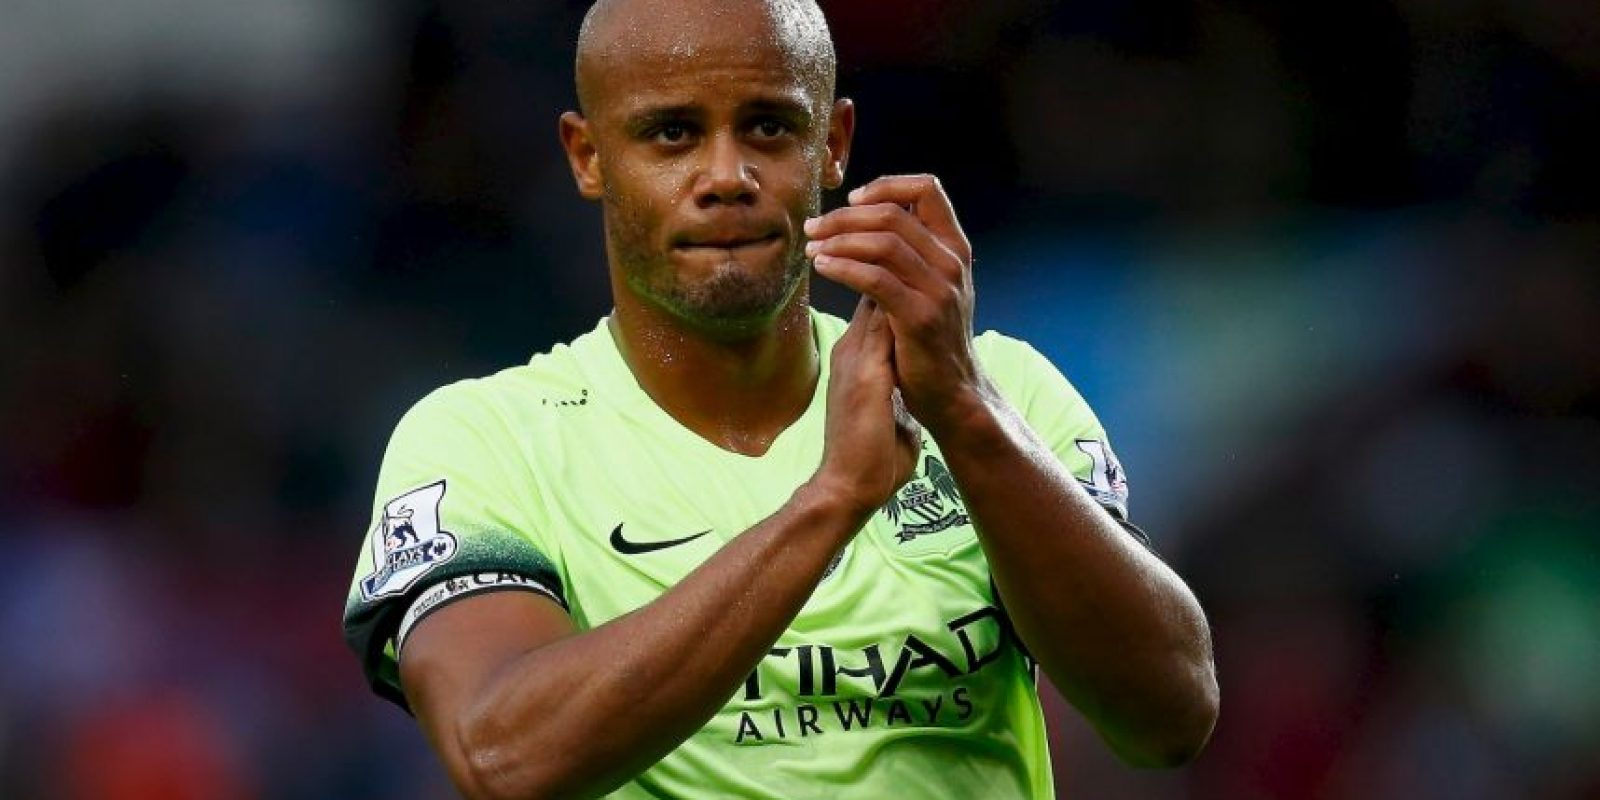 Vincent Kompany (Bçelgica, Manchester City, 29 años) Foto: Getty Images